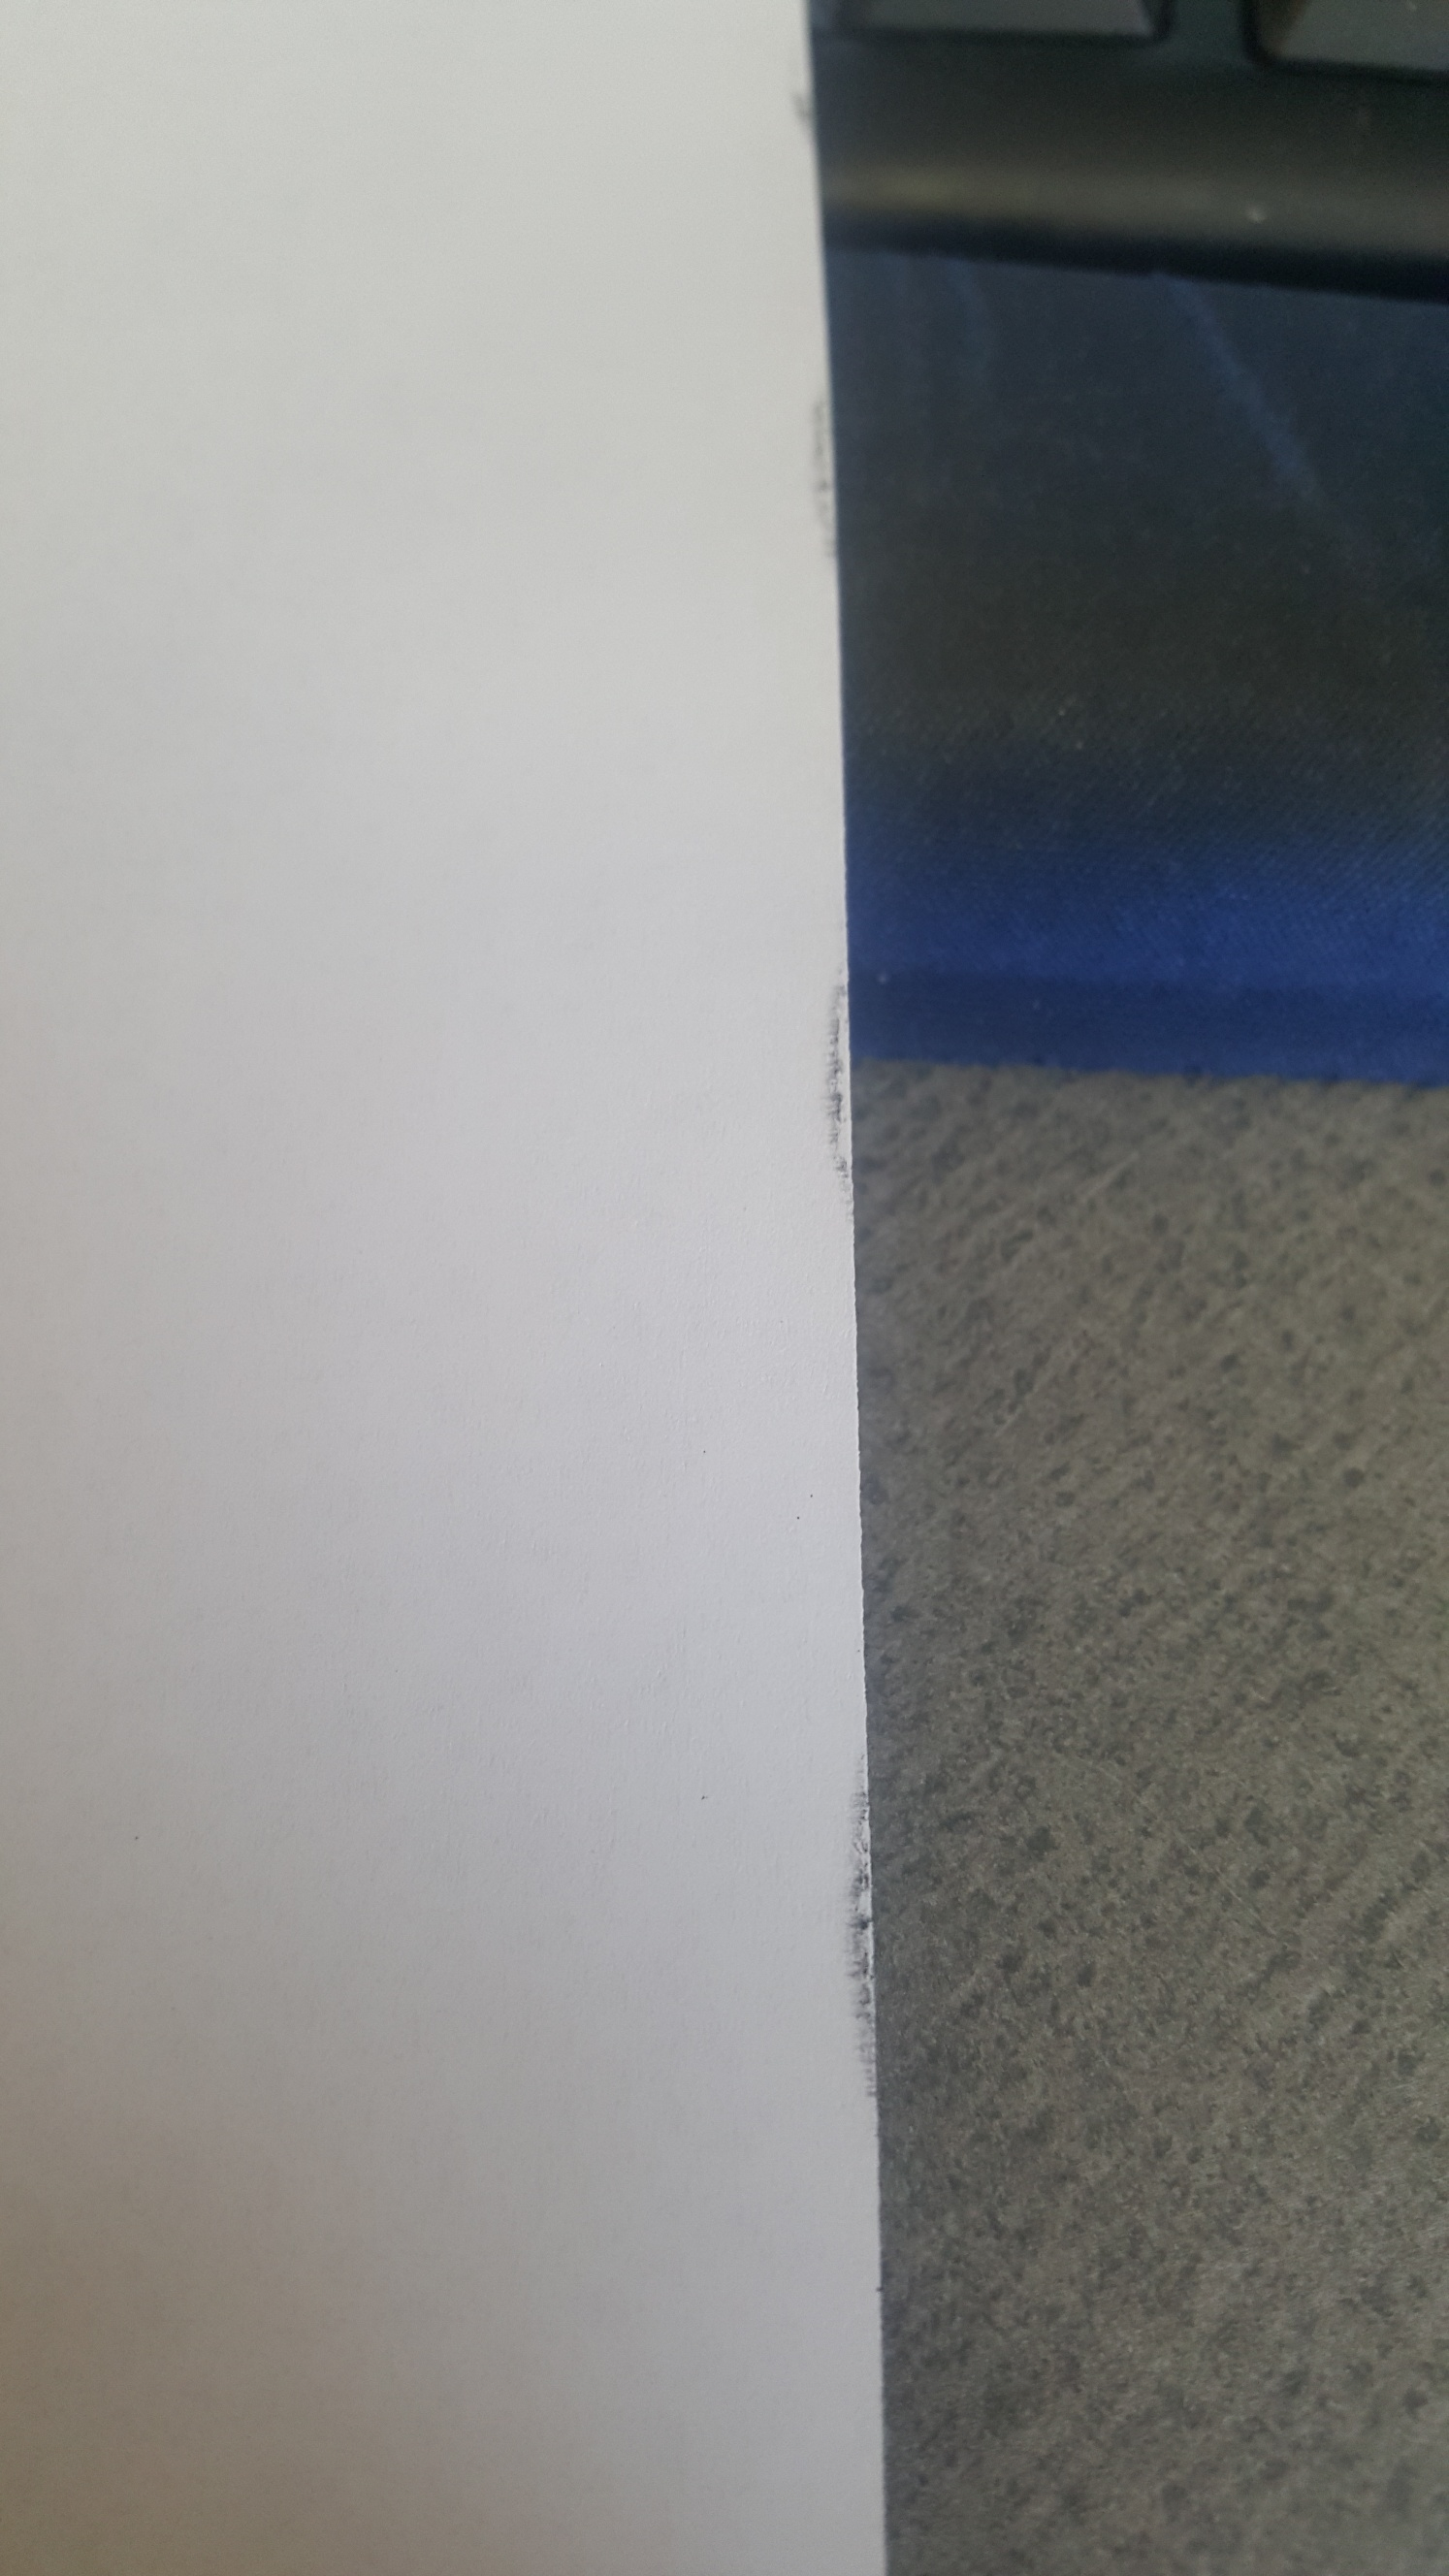 black marks on right edge of paper - HP Support Community - 6144046